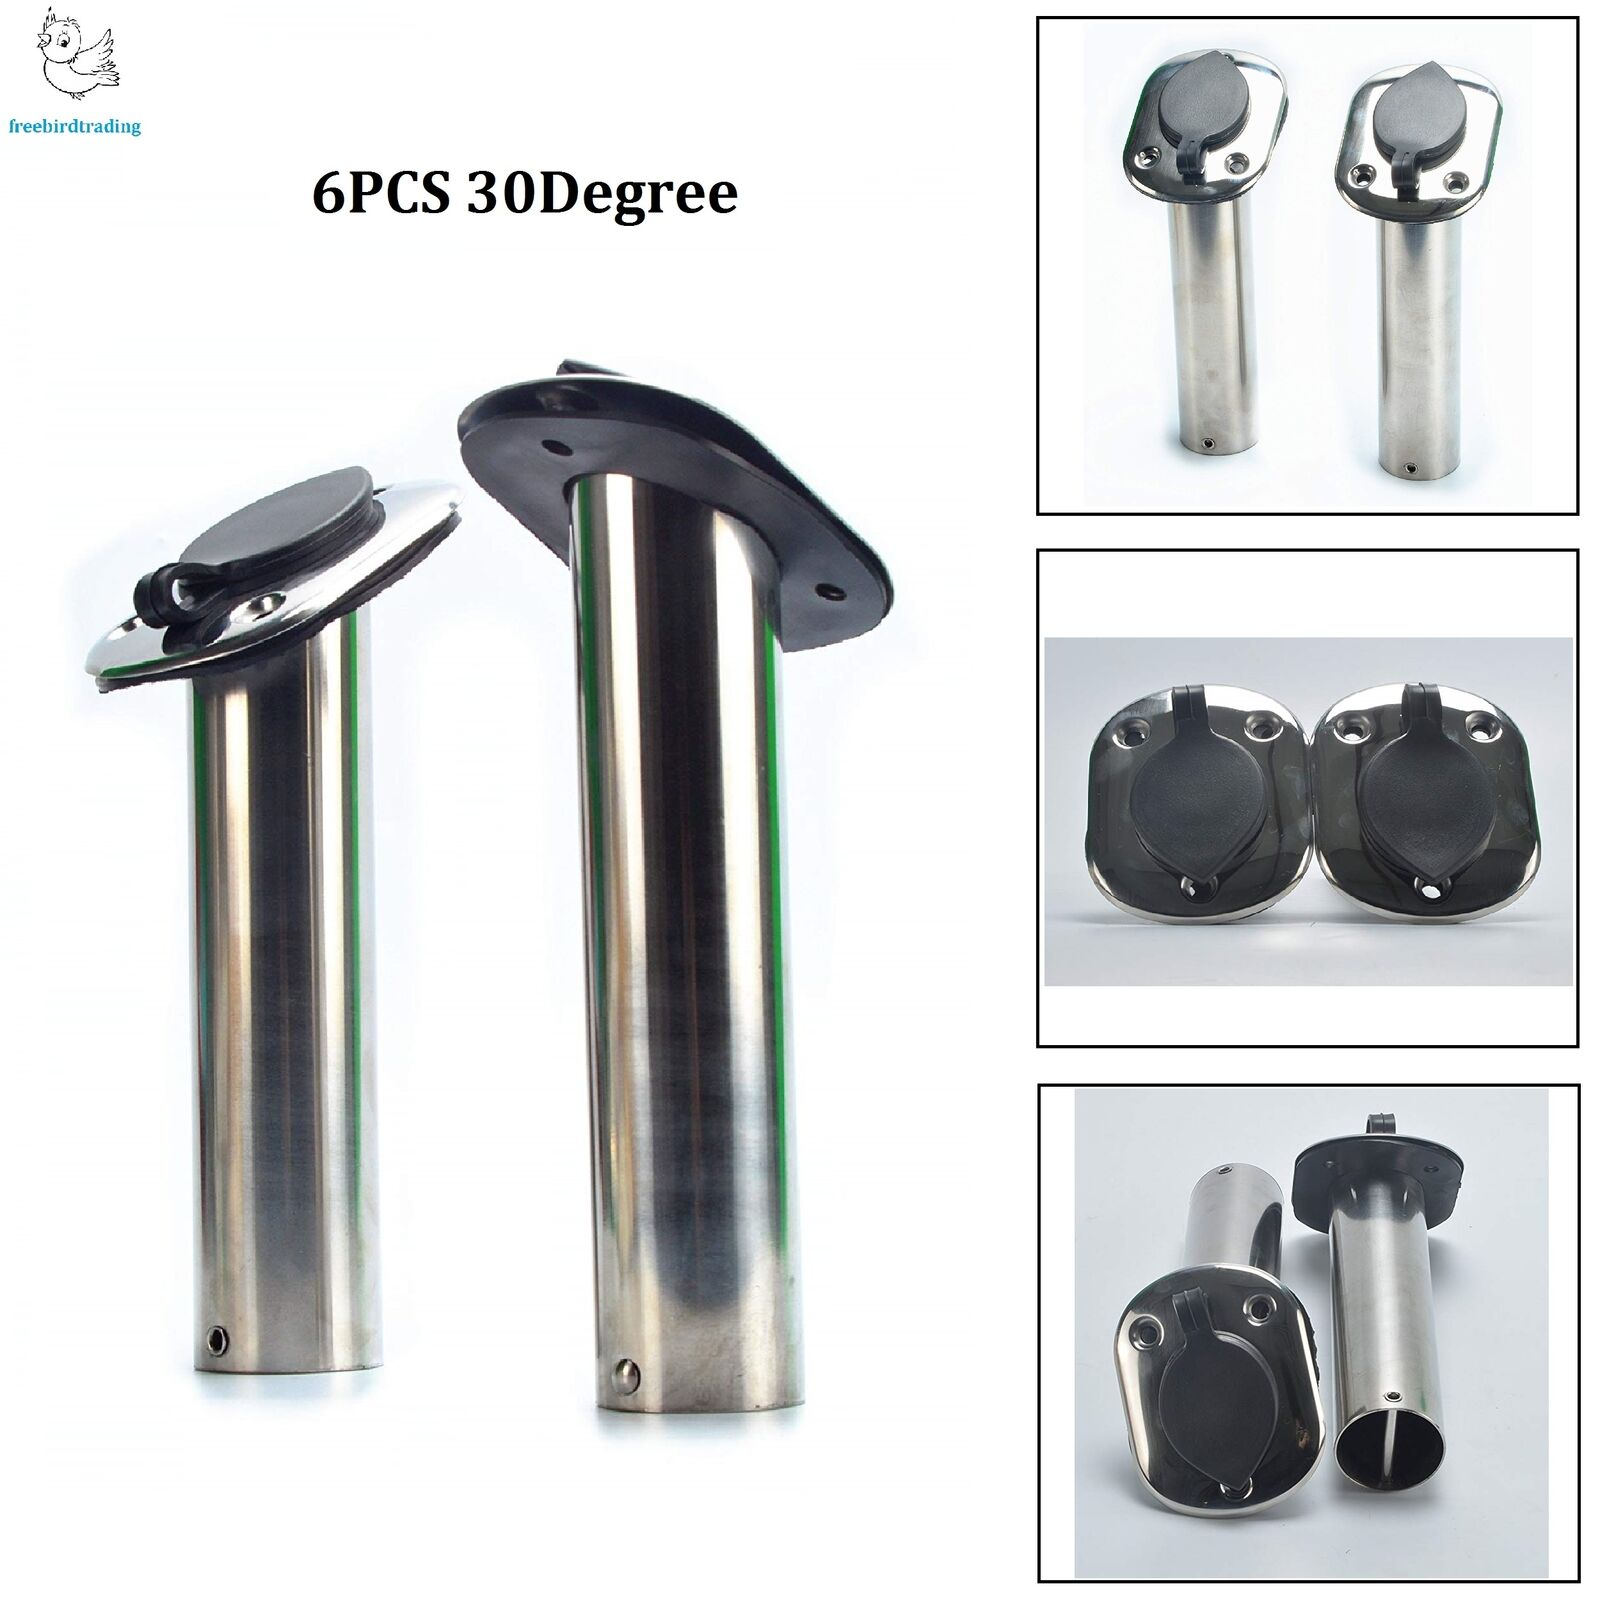 6PCS Rod Holder Flush  Mount Stainless Steel Fishing Rod Holders-30 Degree US  fast delivery and free shipping on all orders